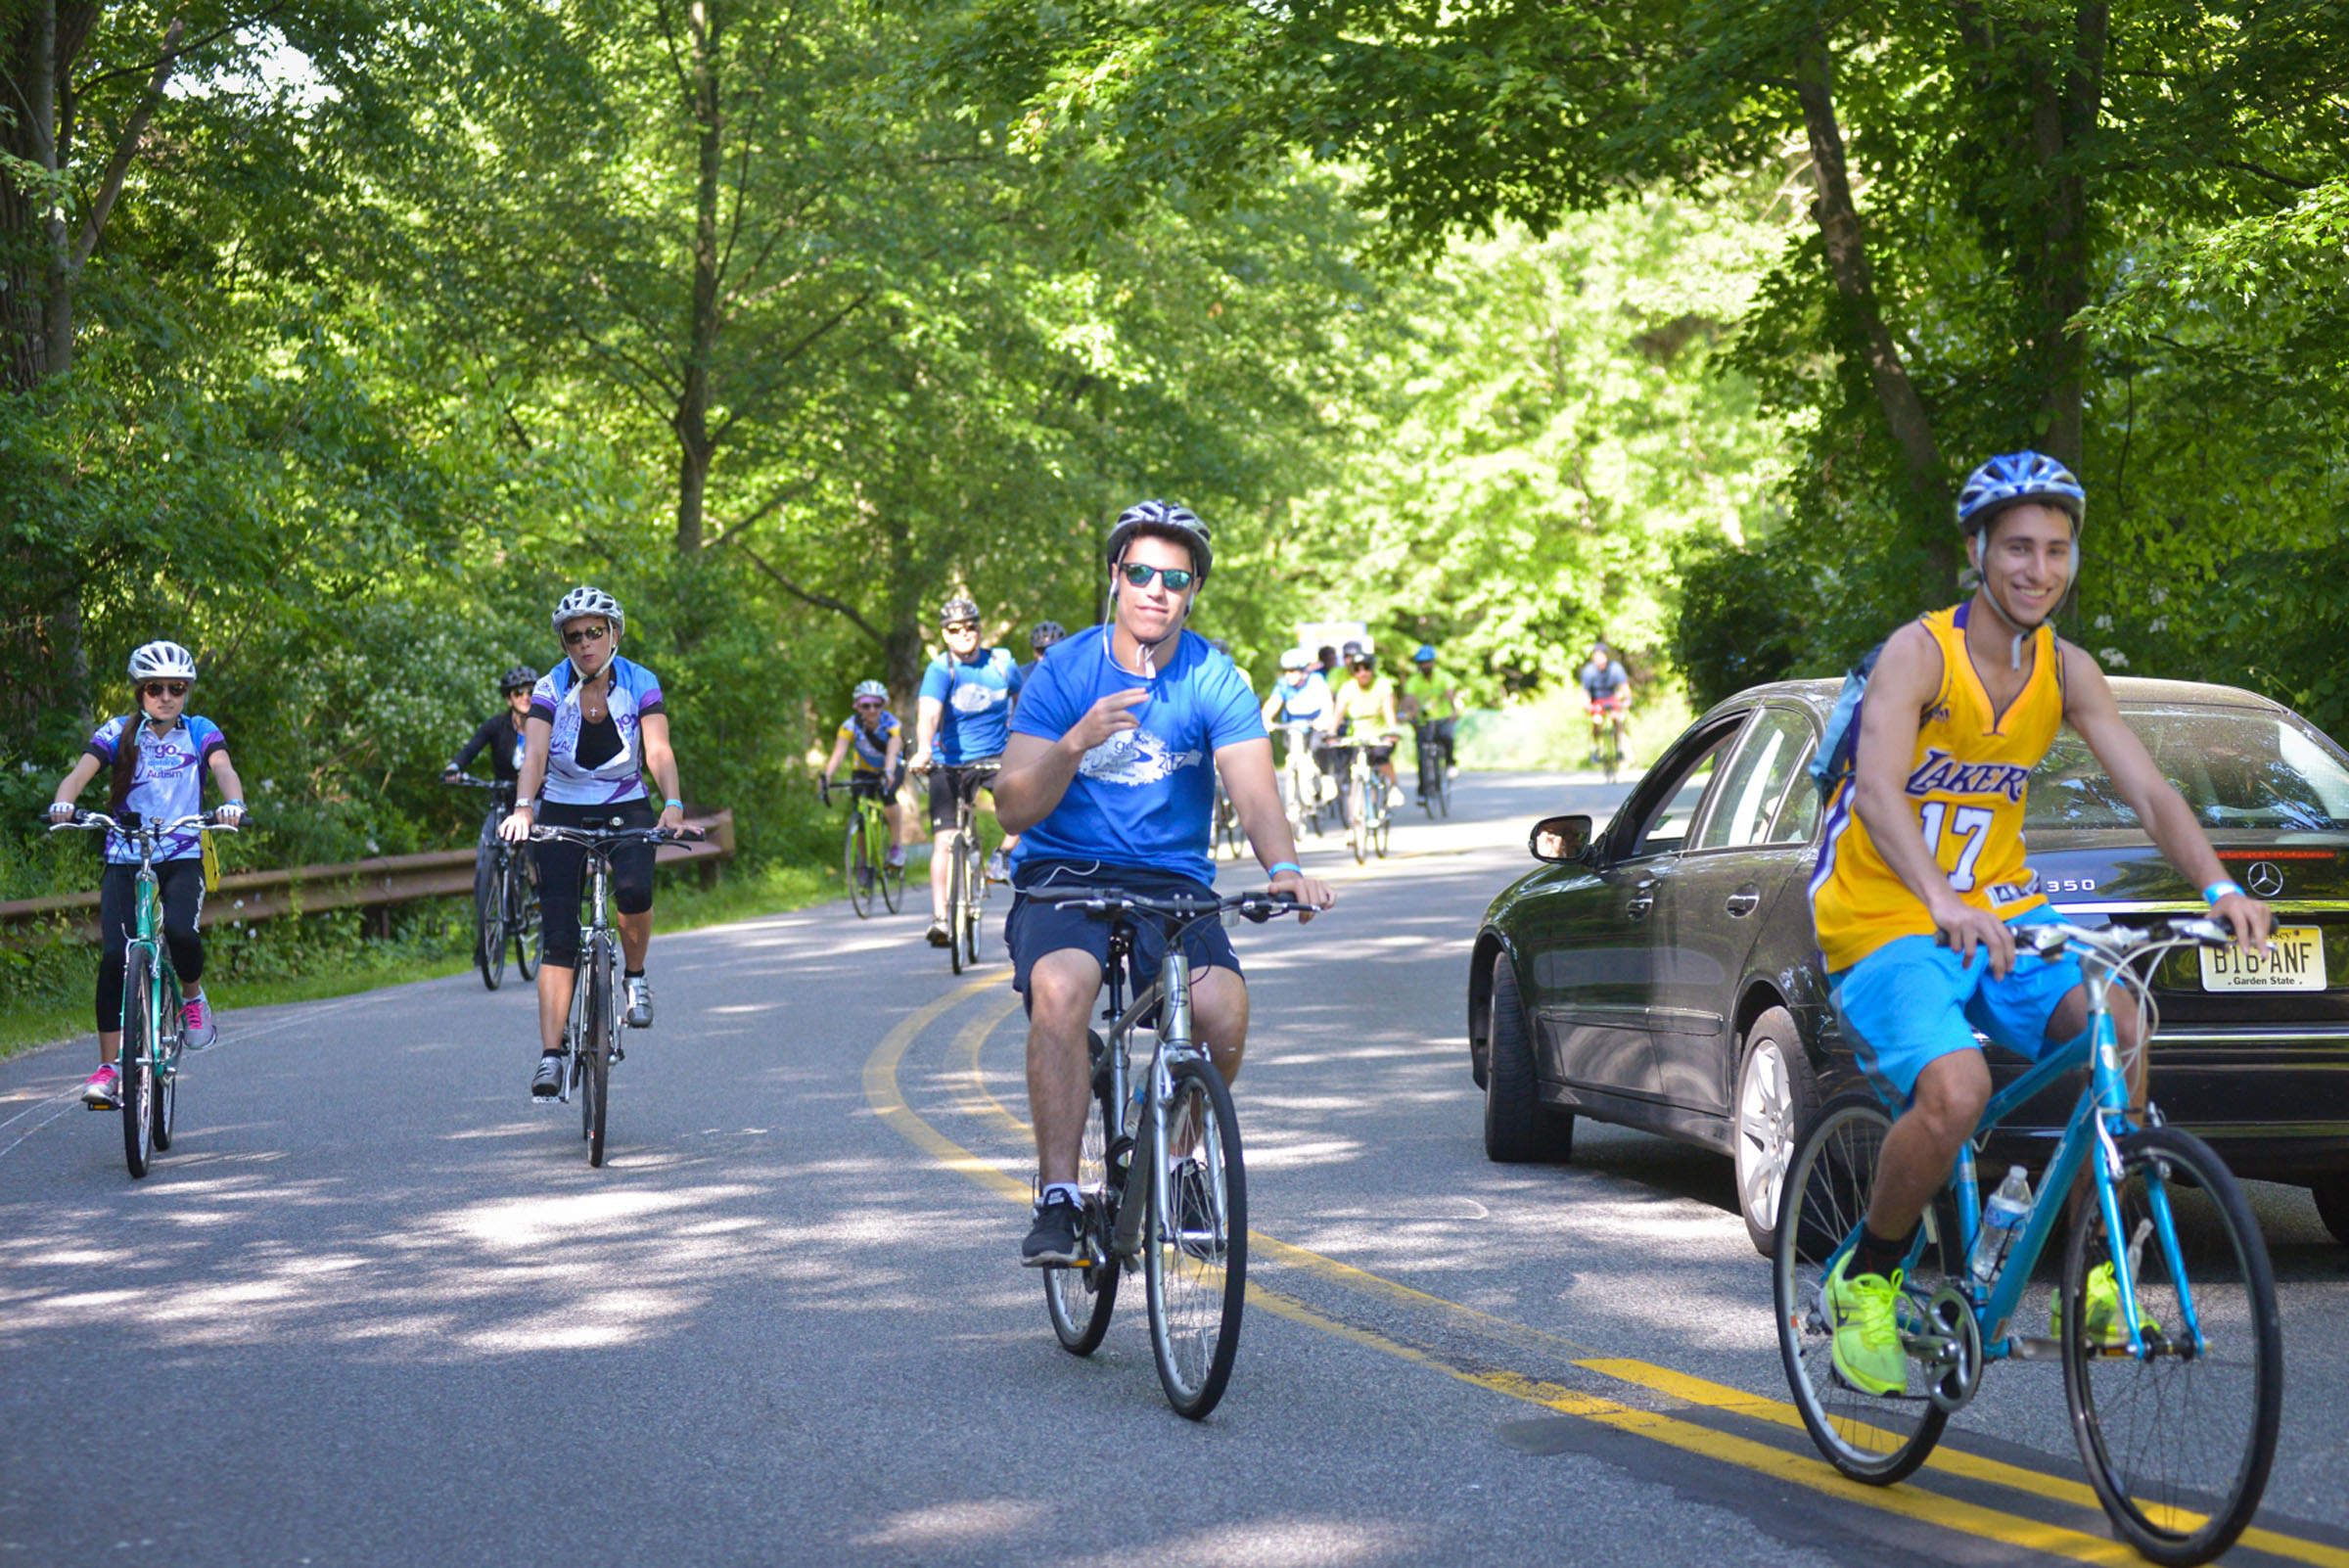 2017-06-04 GTD4A Charity Bike Ride - BCC - Paramus NJ-1905.jpg